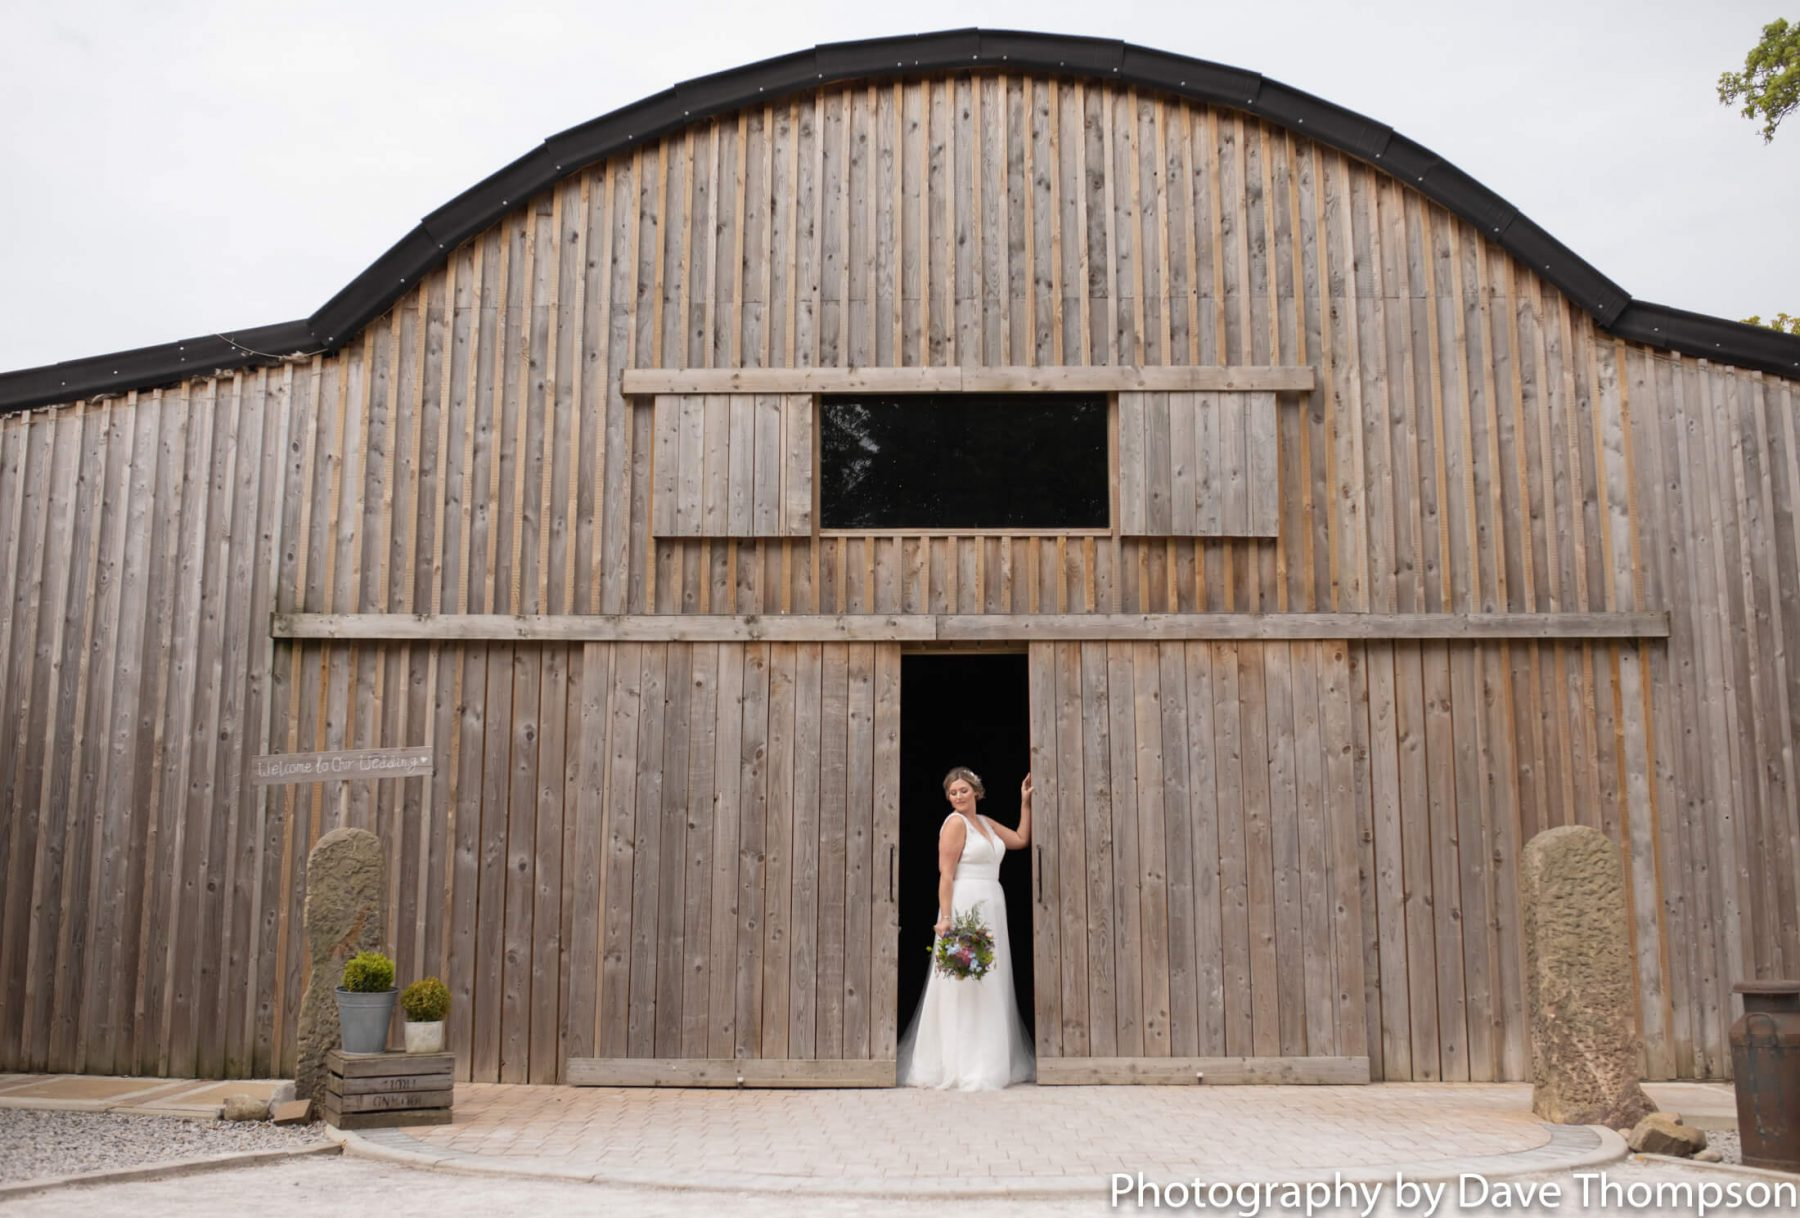 A bride in the doorway of Alcumlow Barn wedding venue